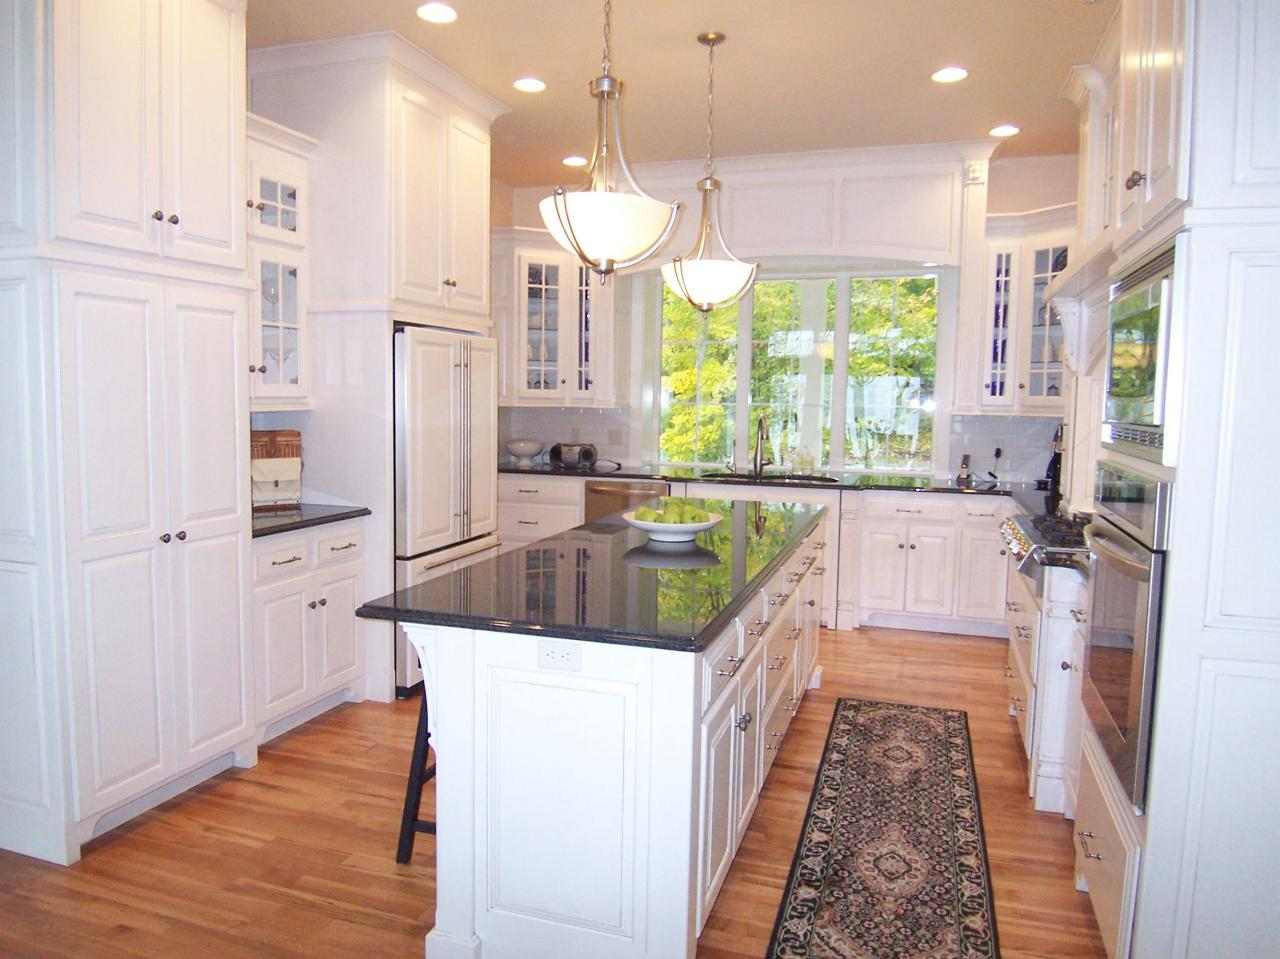 U shaped kitchens hgtv for Kitchen design and layout ideas